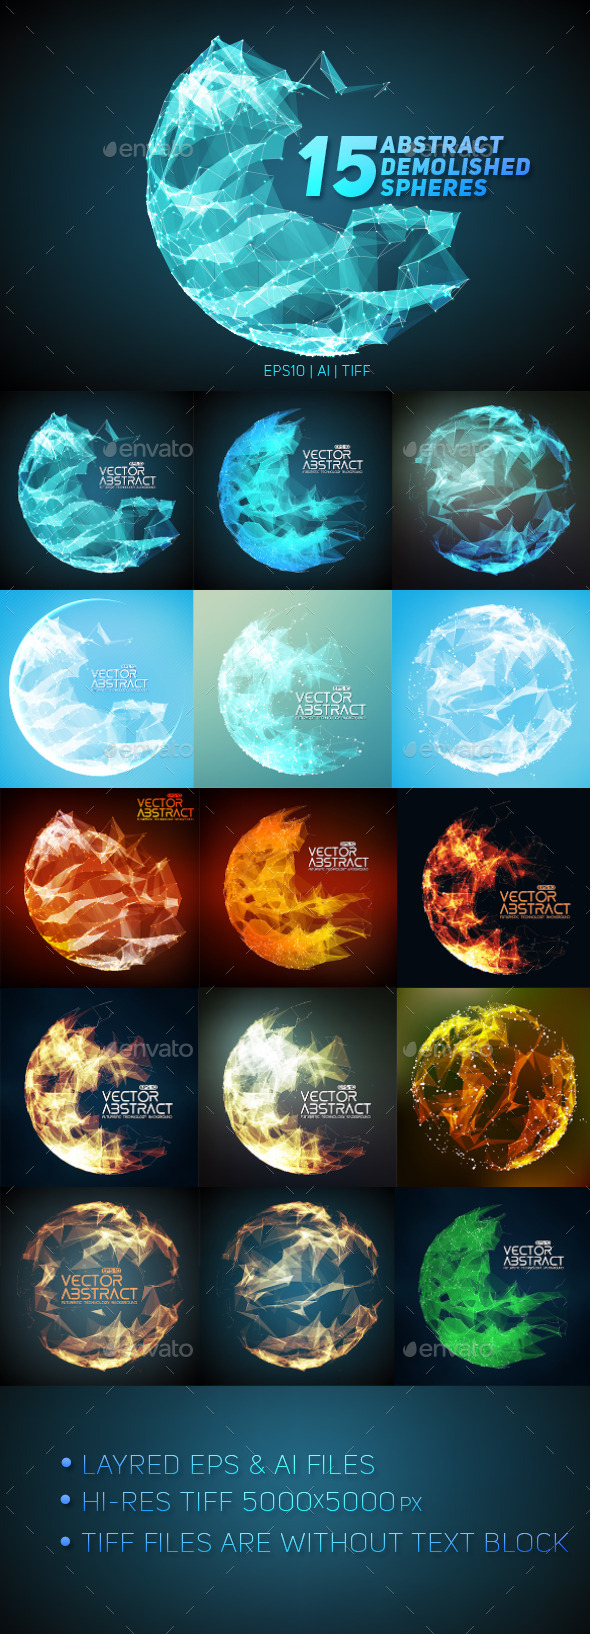 GraphicRiver 15 Abstract Demolished Spheres 8961487